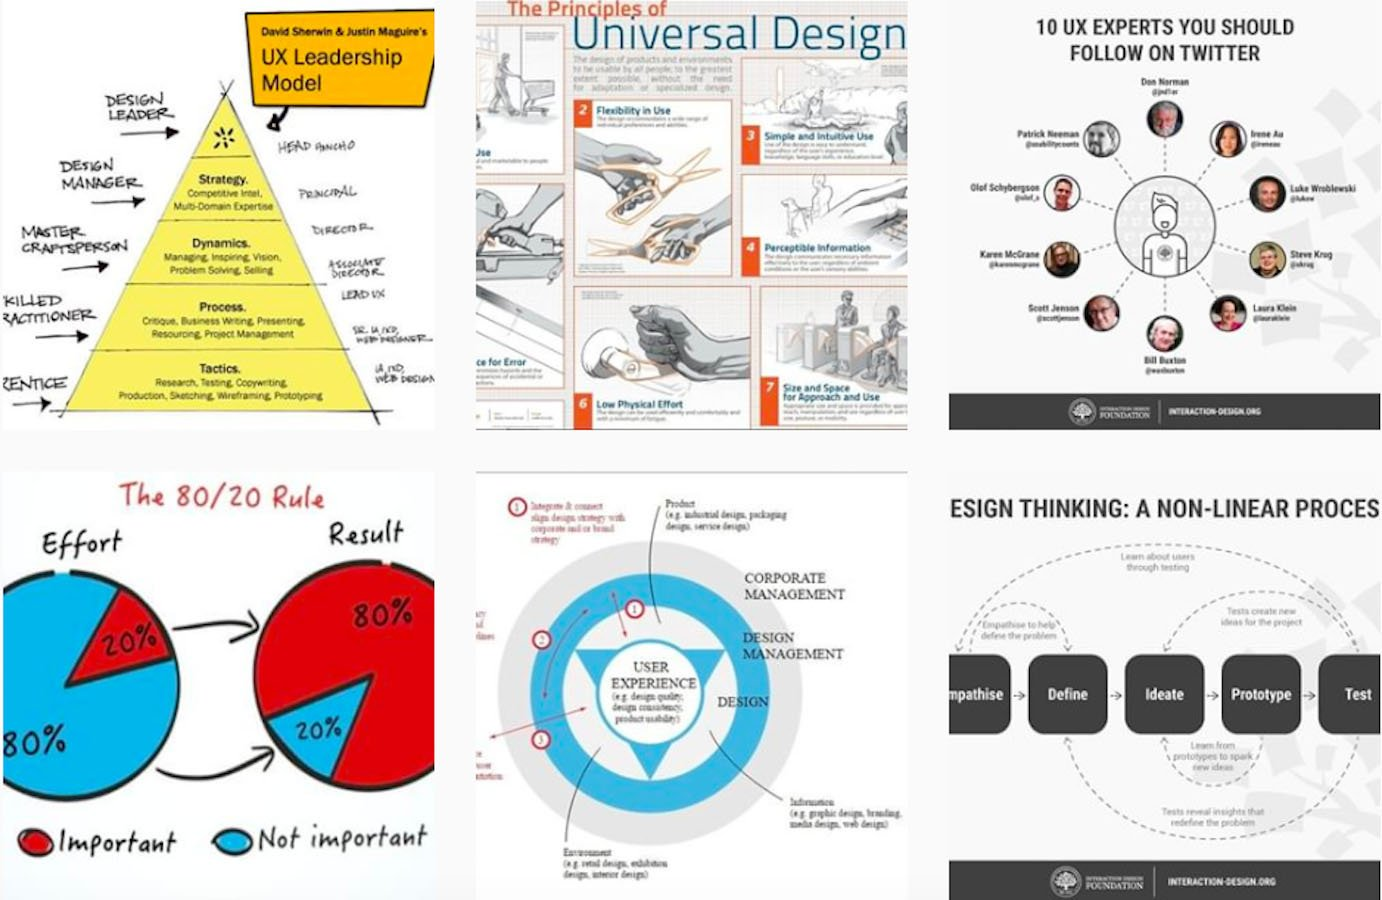 Web Design Inspiration: 110+ Accounts On Instagram and 10+ Best UX & Web Design Books in 2020 - interaction design foundation